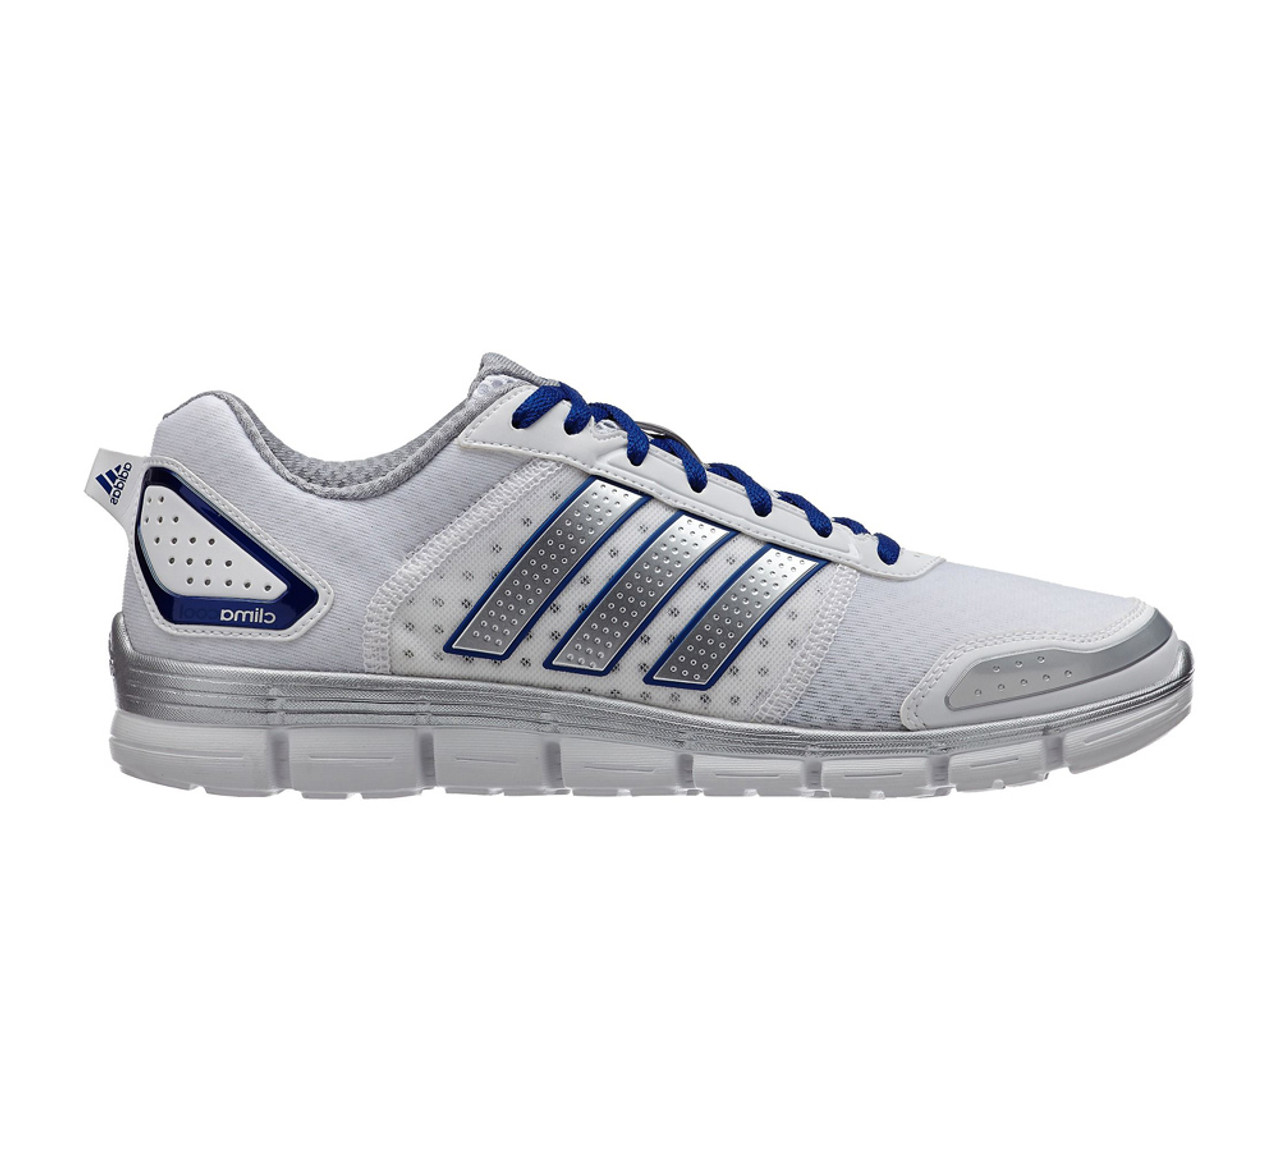 Adidas Men's Climacool Aerate 3 Running Shoes White/Royal Blue